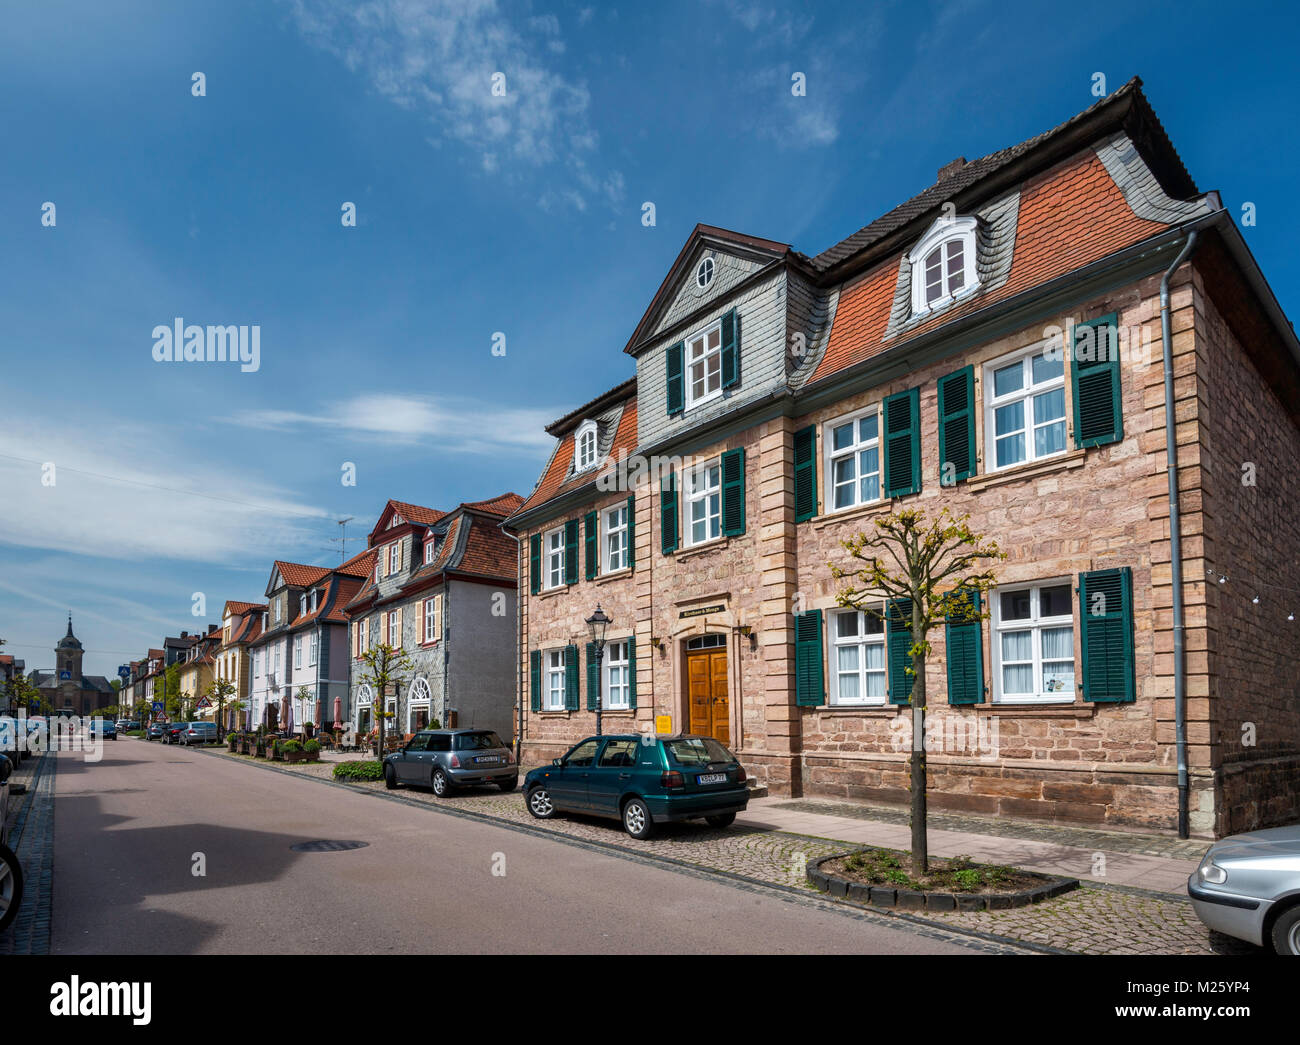 Schlossstrasse, main street in Bad Arolsen, Waldeck Region, Hessen, Germany - Stock Image